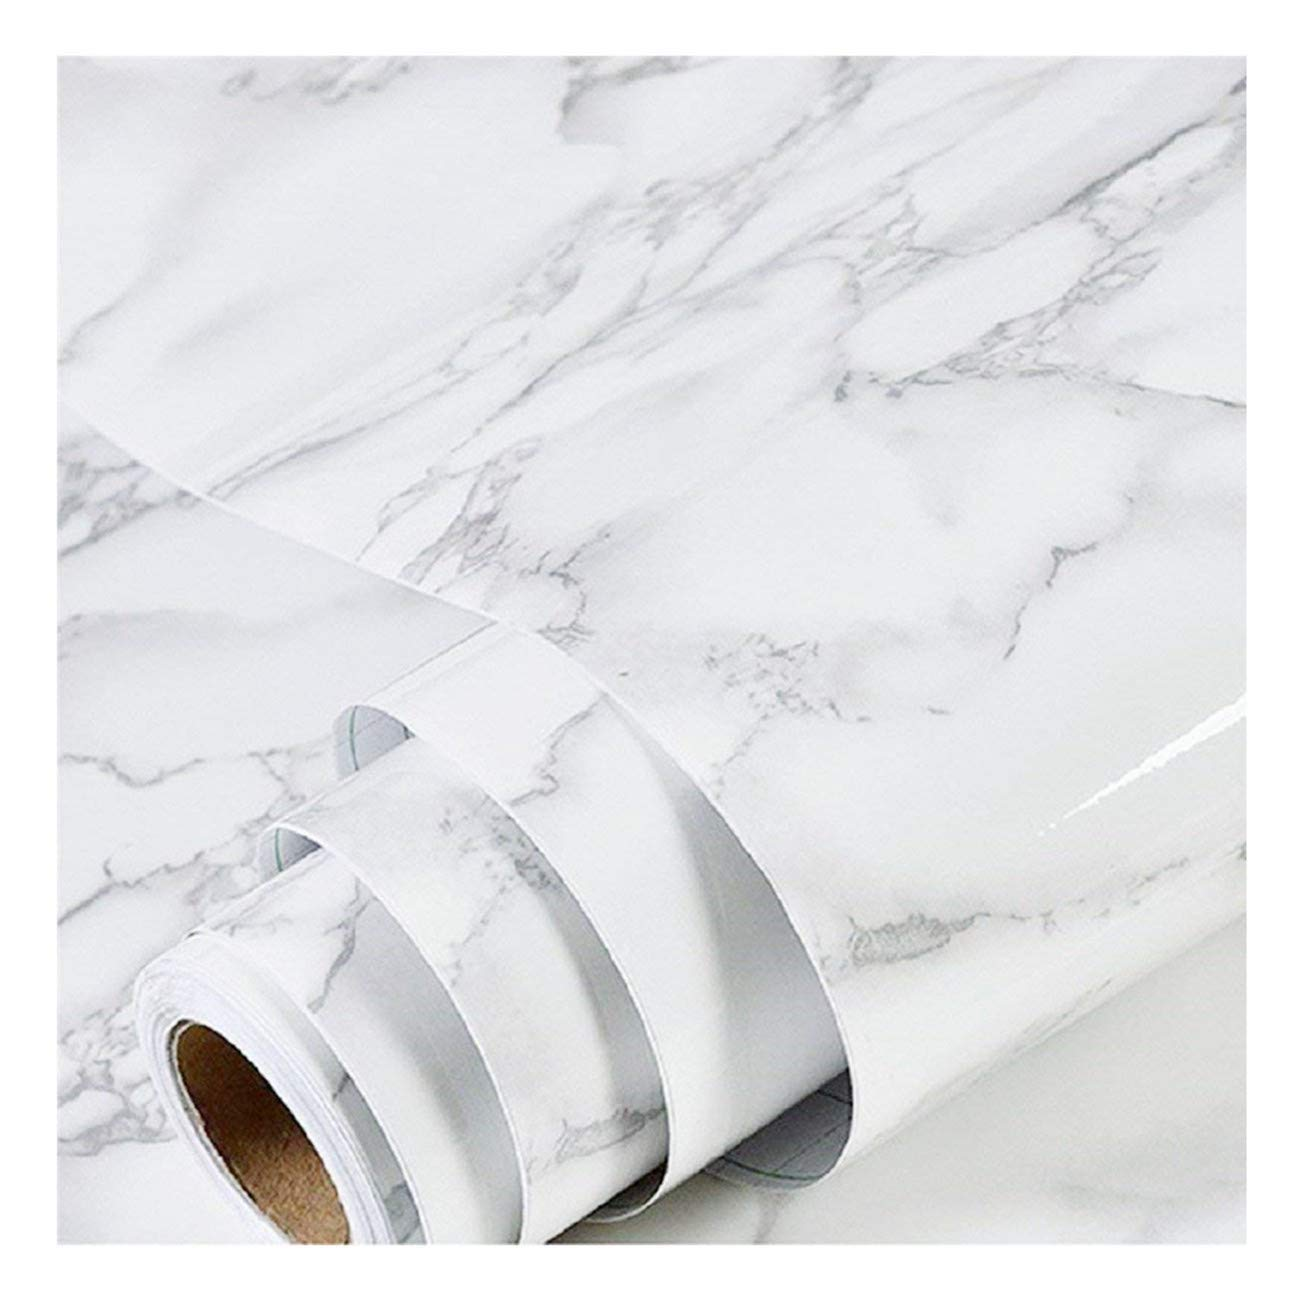 Marble Contact Adhesive Paper 60cm /× 200cm Granite Appearance Multi-Purpose Permanent Protection Long Duration Waterproof Oilproof Easy Taste Disassemble No Leaving Traces Thickened.